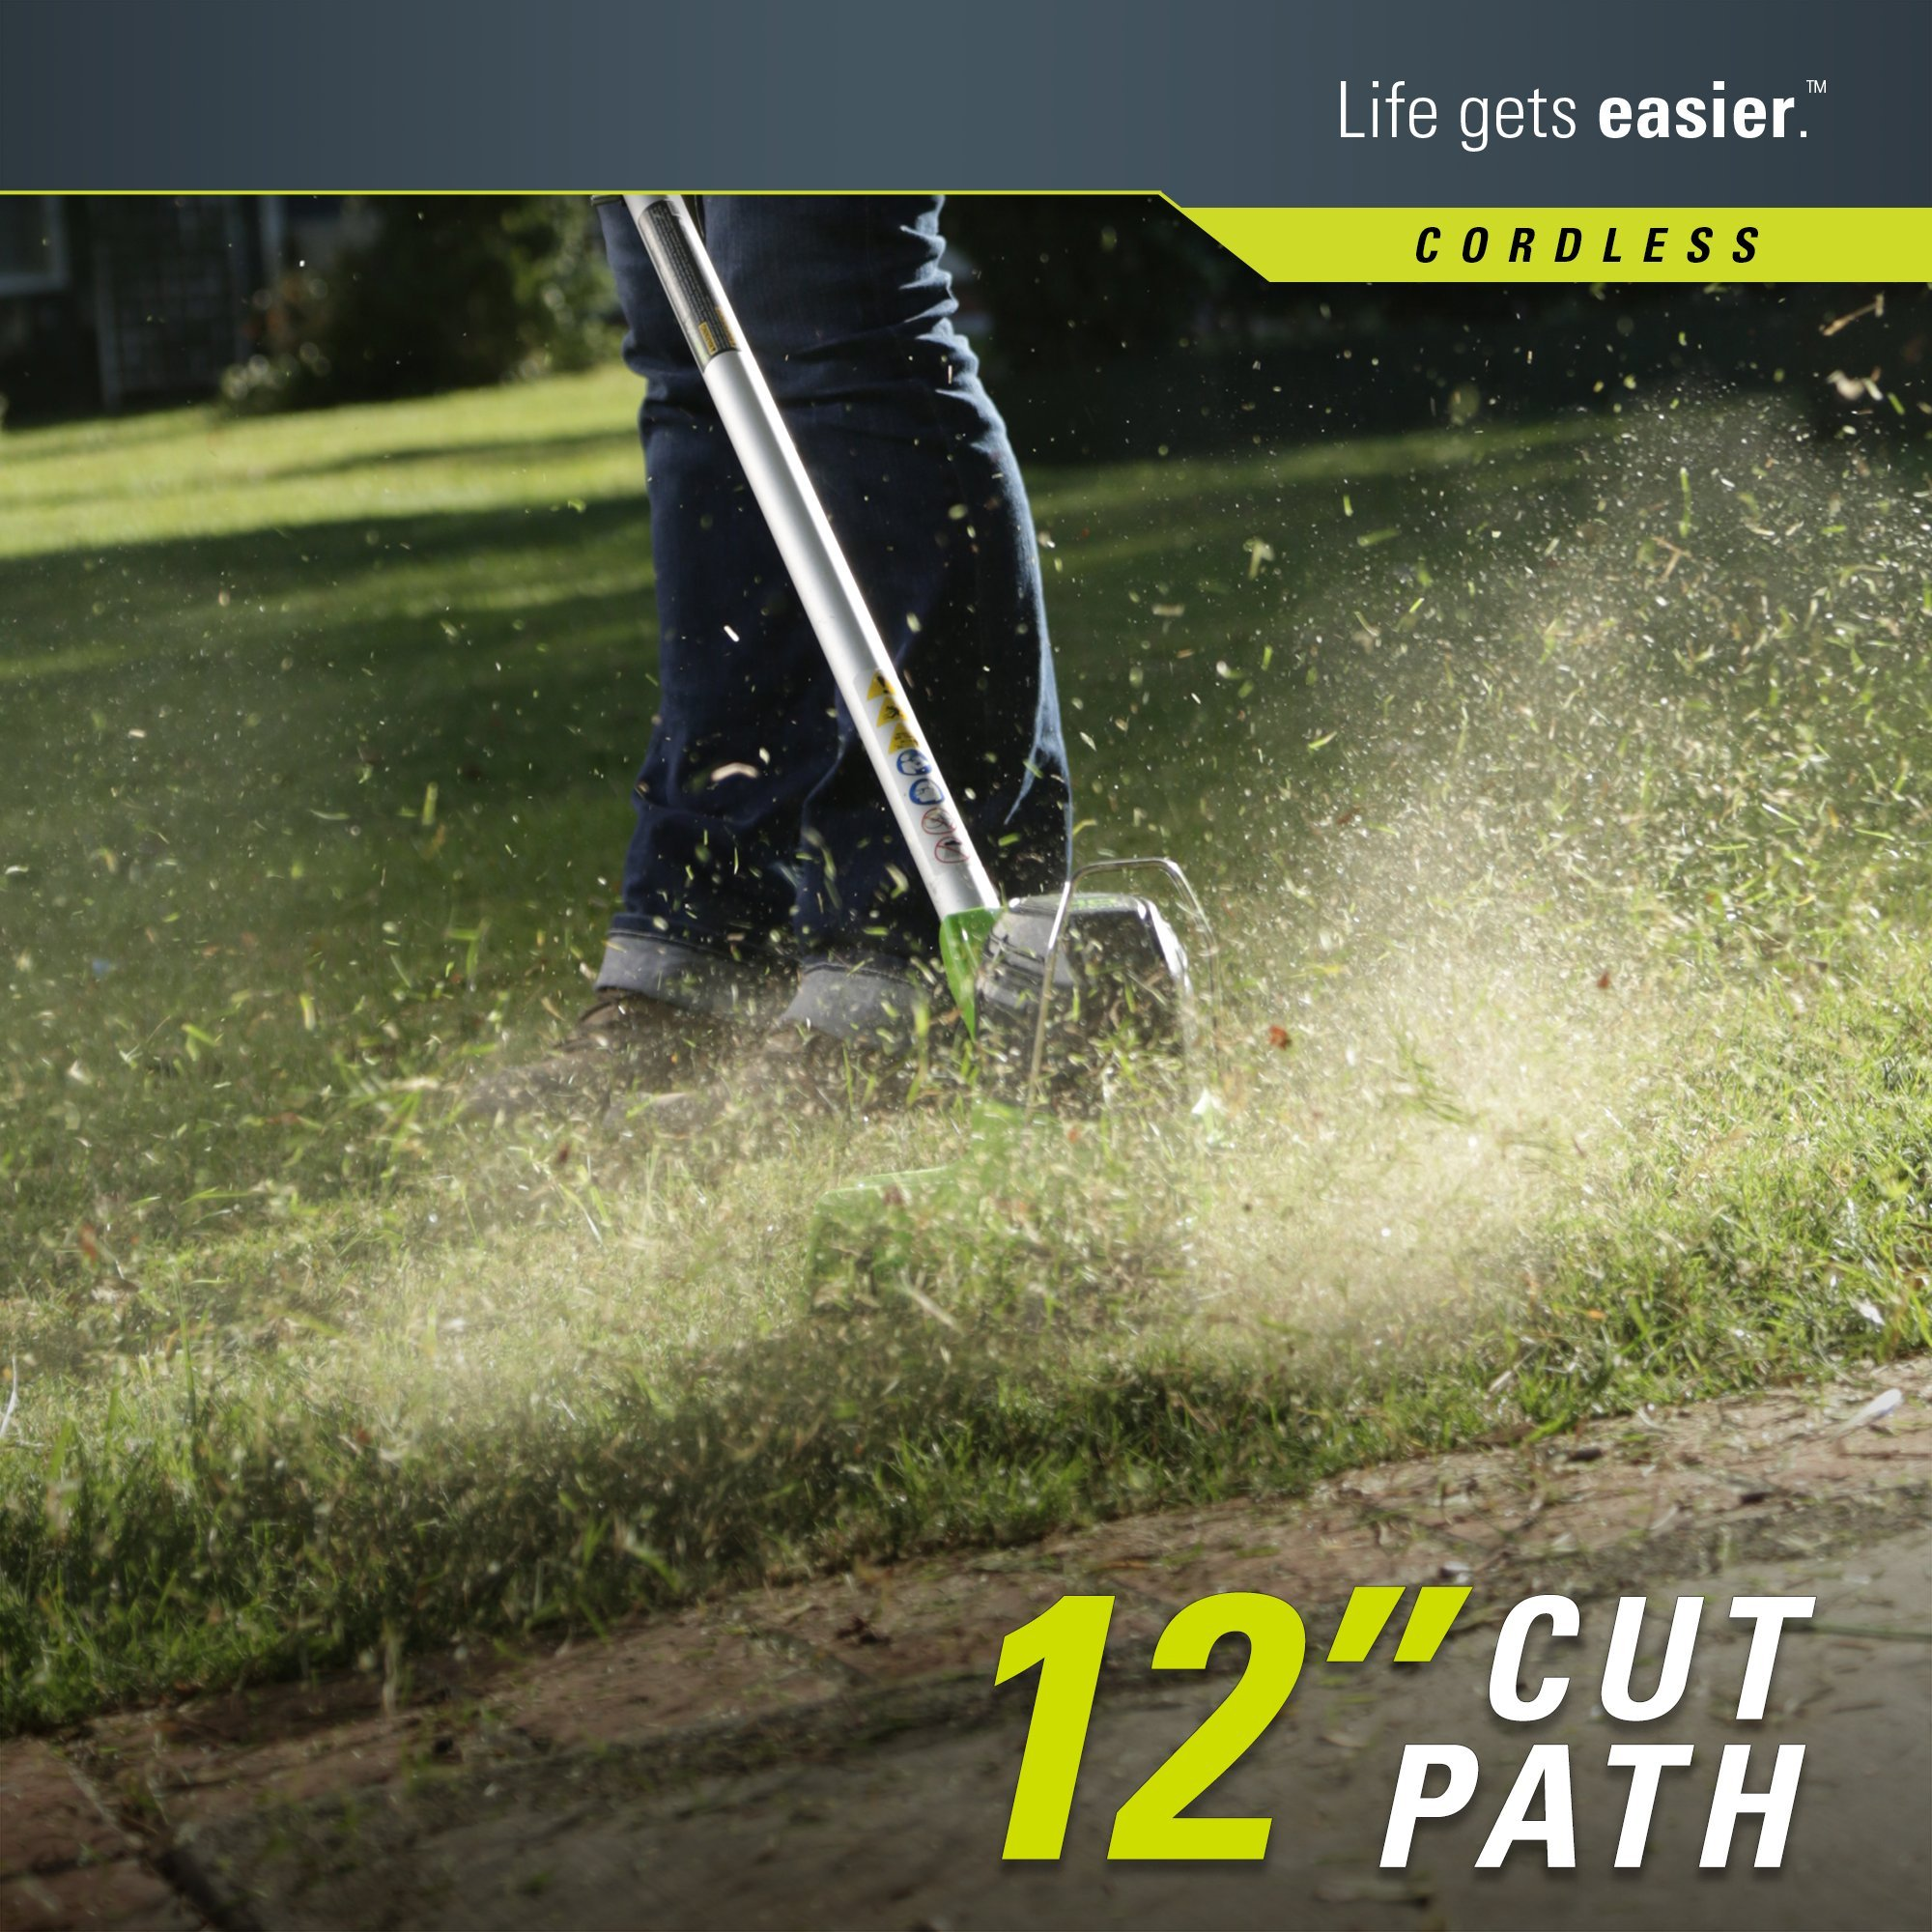 GreenWorks 2101602 G-MAX 40V 12-Inch Cordless String Trimmer, 2Ah Battery and Charger Included by Greenworks (Image #2)